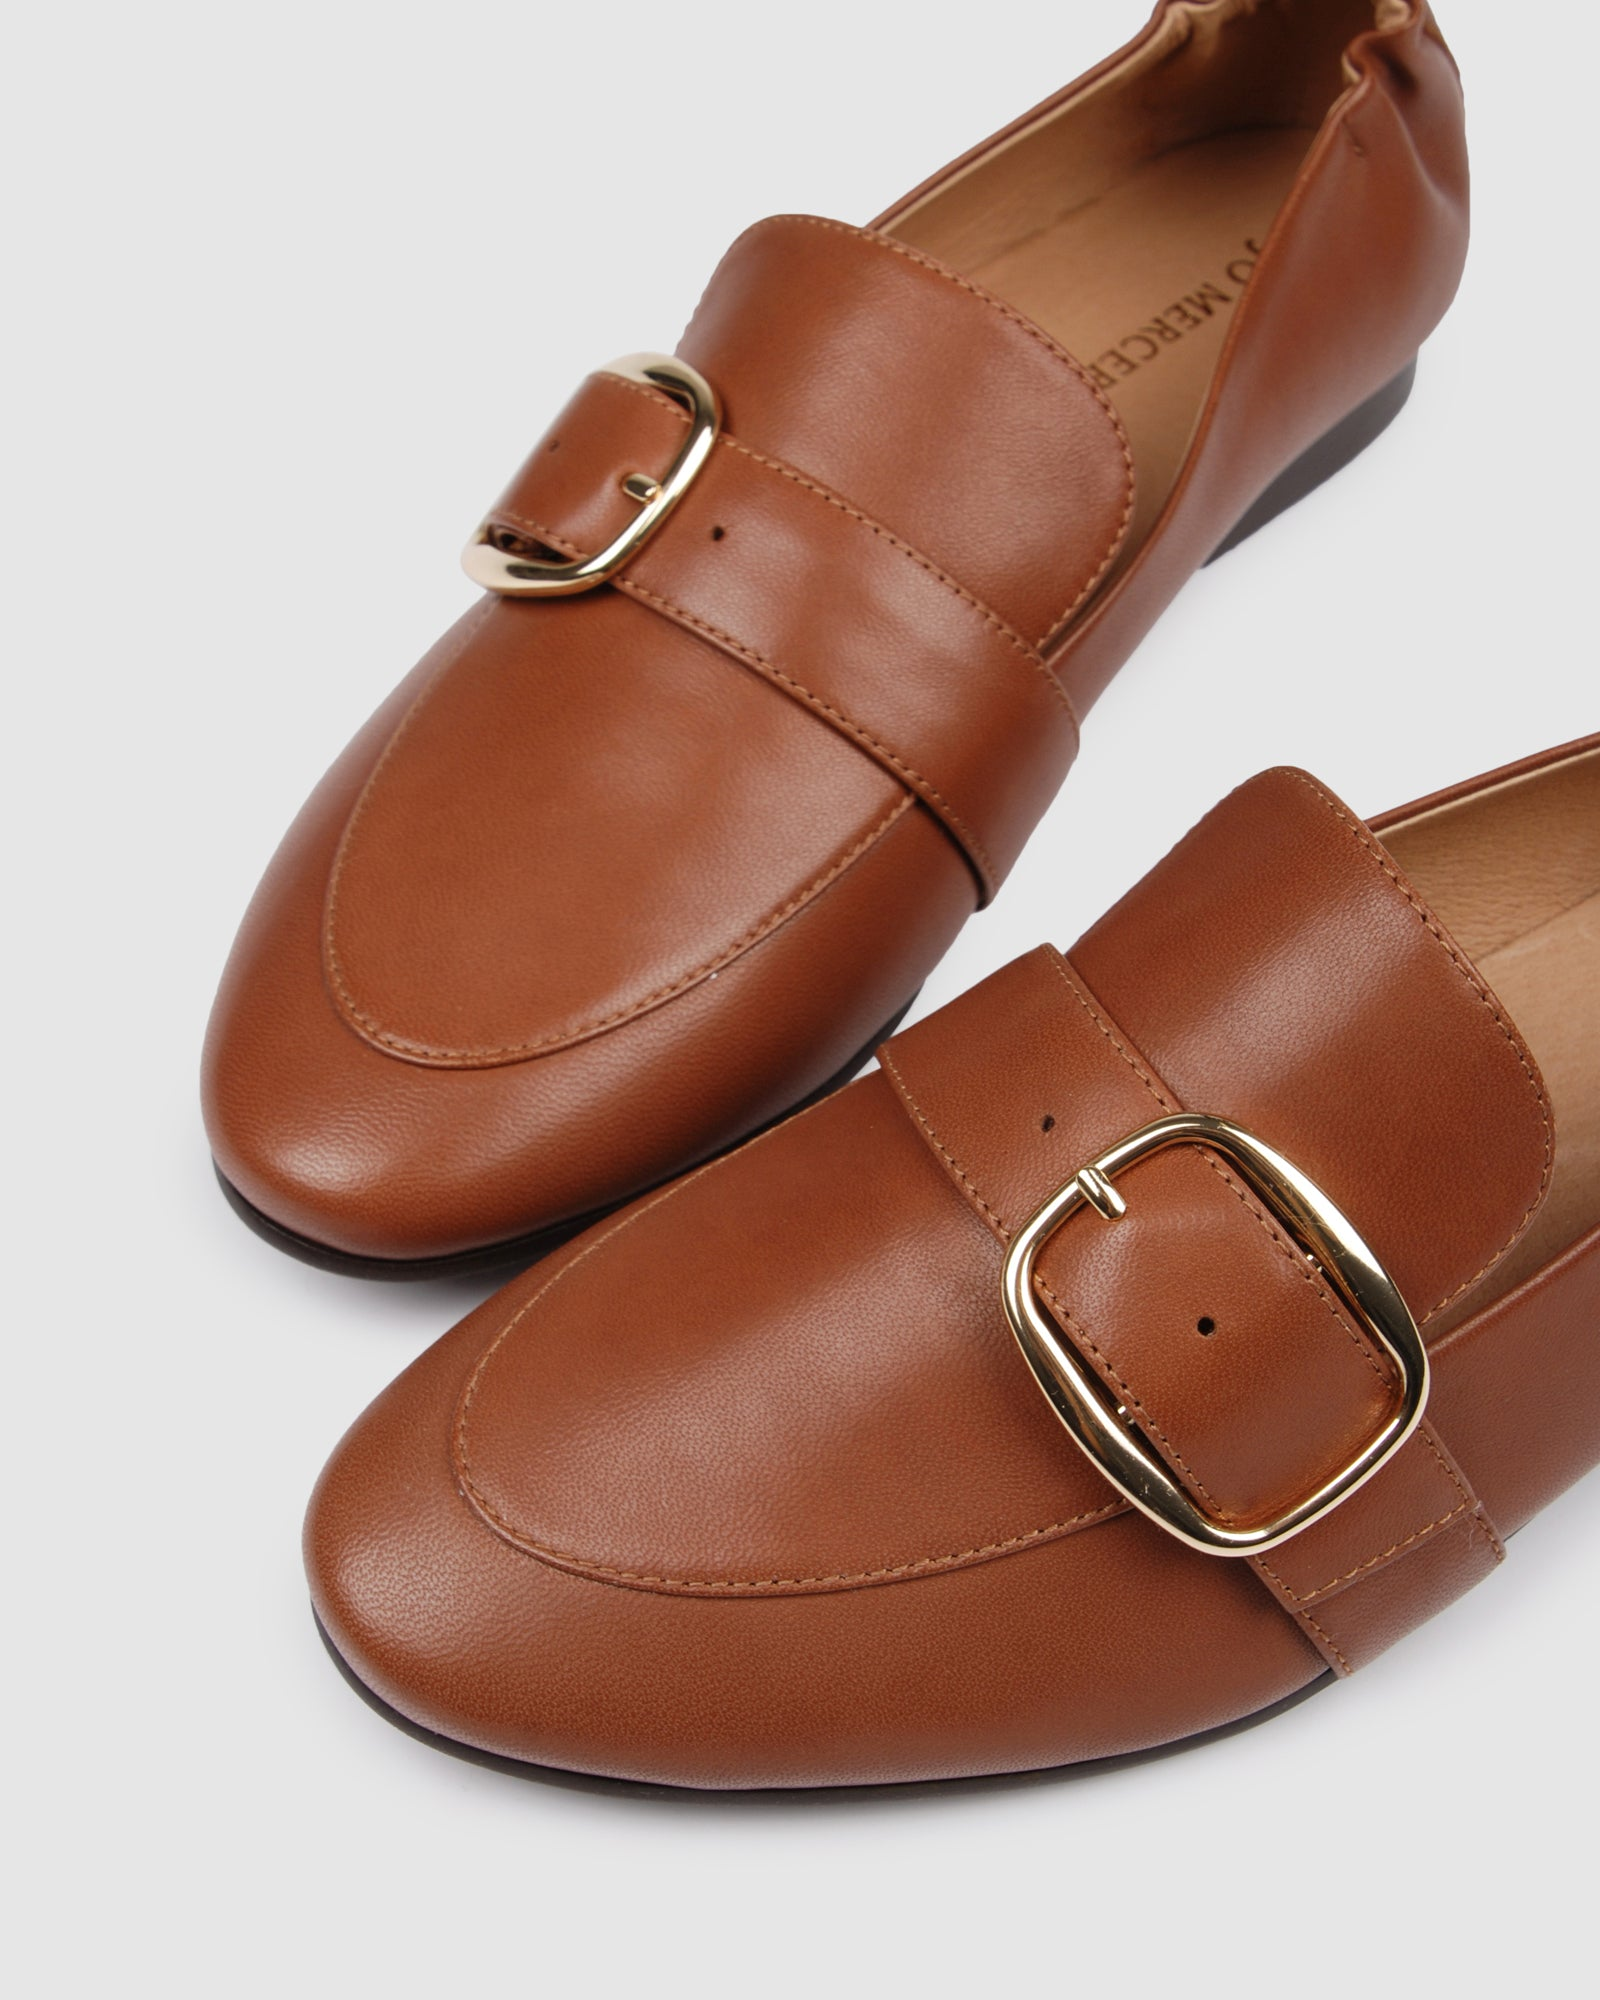 DORSET CASUAL FLATS TAN LEATHER